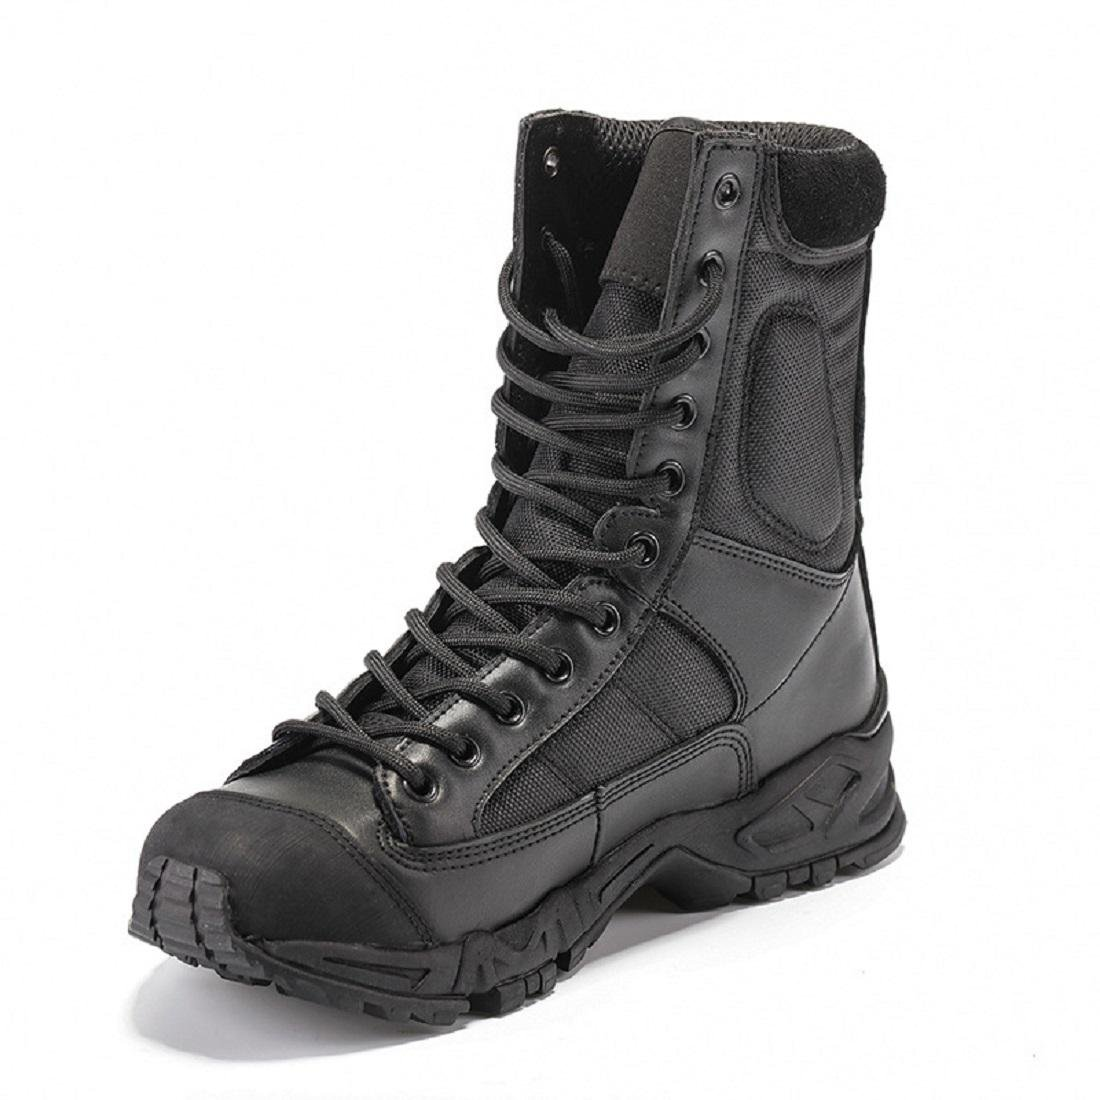 72a603d7ba85 Amazon.com : Men's Martin boots Fashion Tooling shoes High-top shoes ...